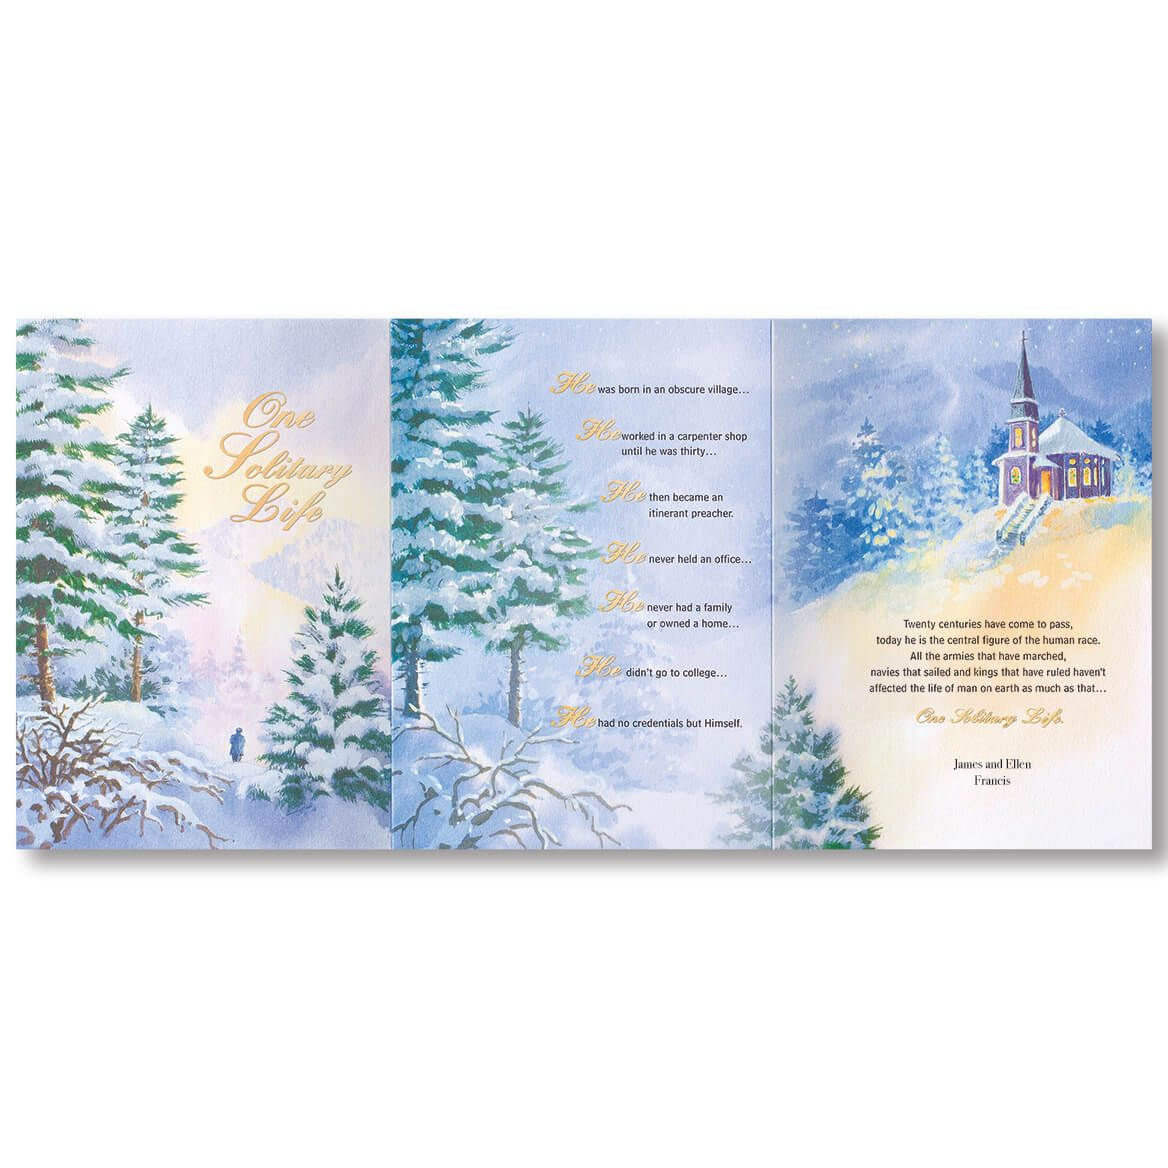 Personalized One Solitary Life Christmas Card Set of 20-356041